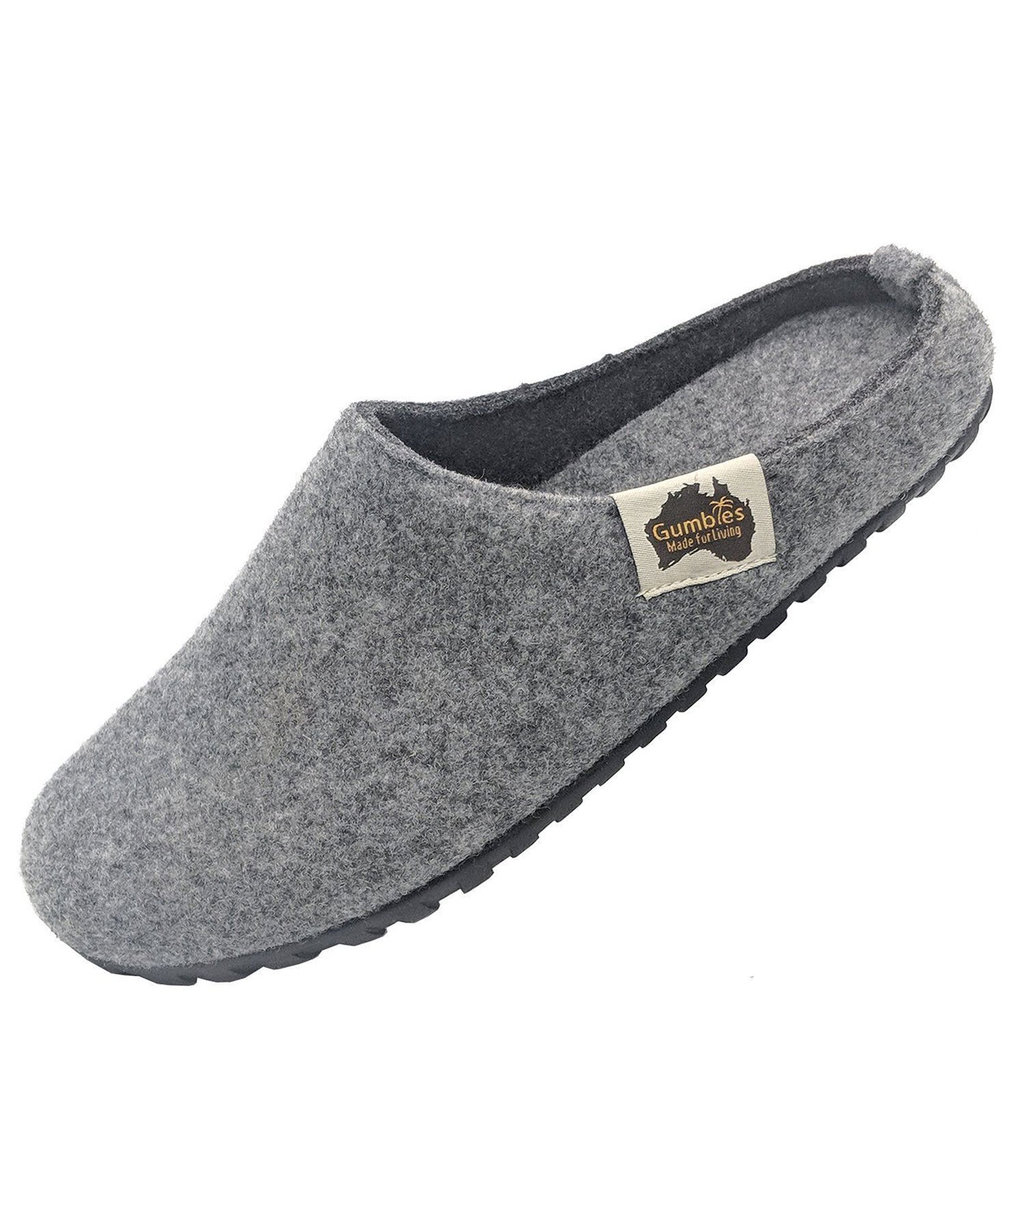 Gumbies Outback Slipper tofflor, Grey/Charcoal